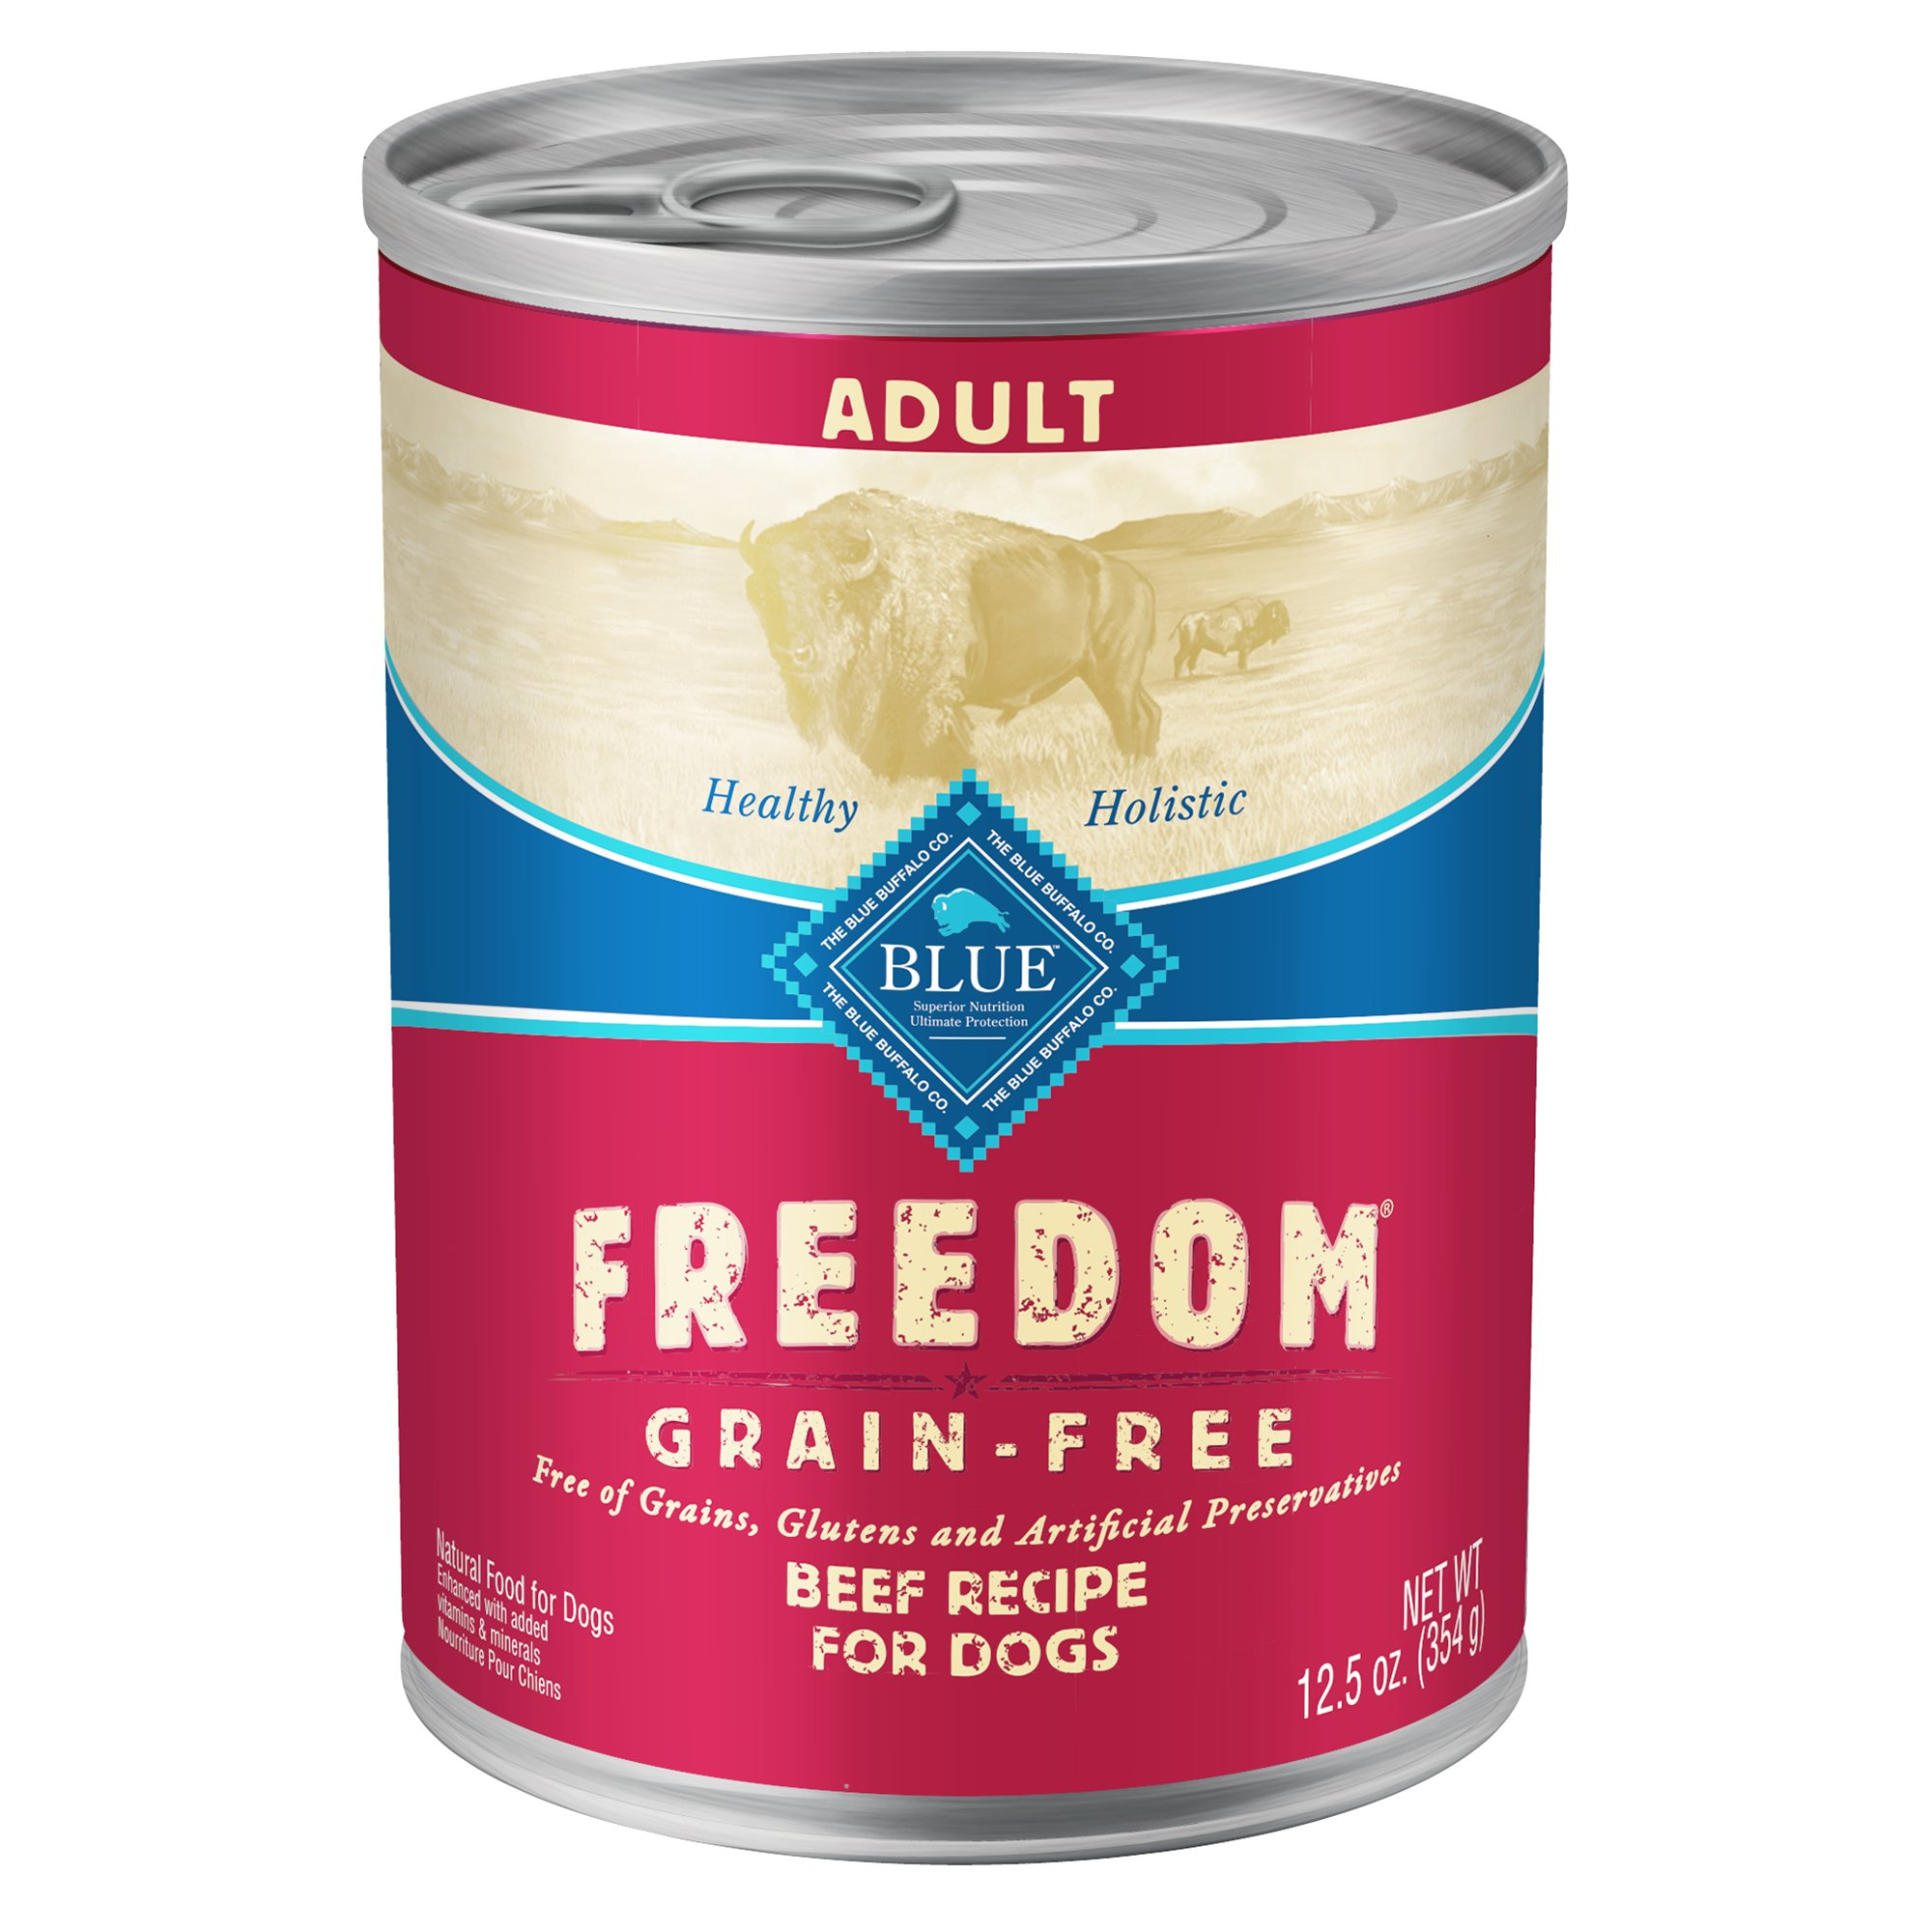 dogs product lines freedom food